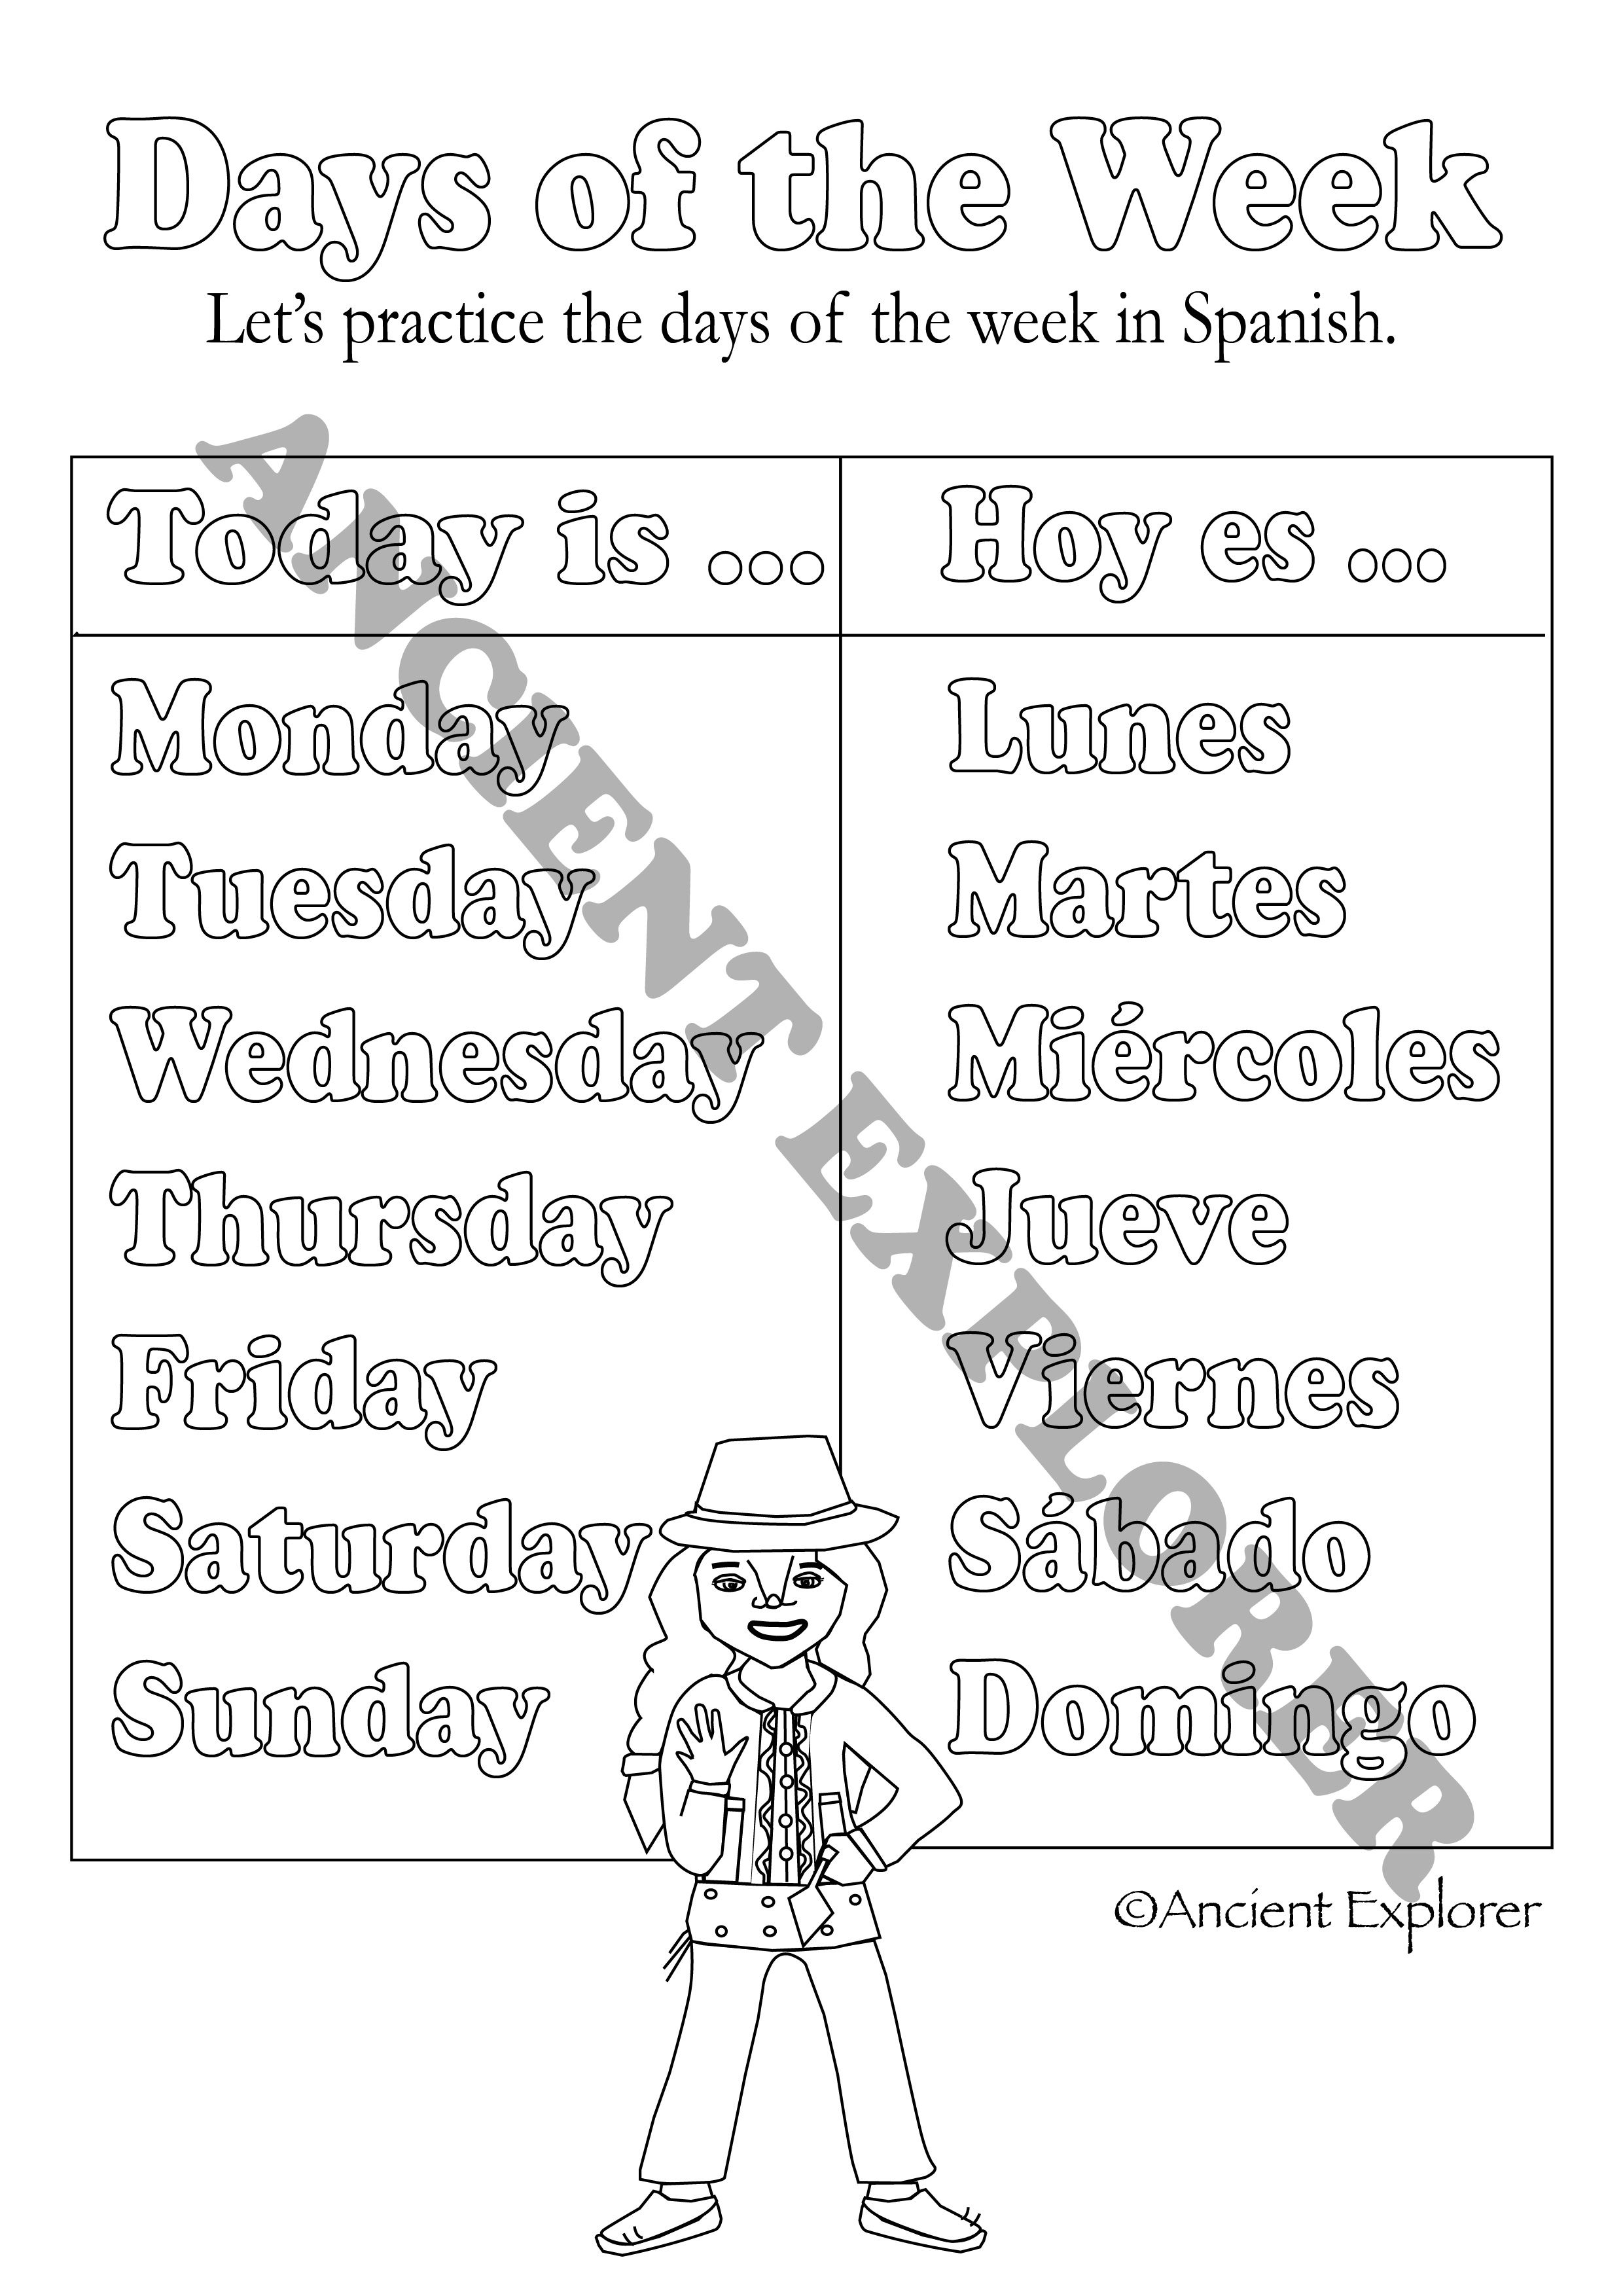 Days Of The Week In Spanish Colouring Sheet